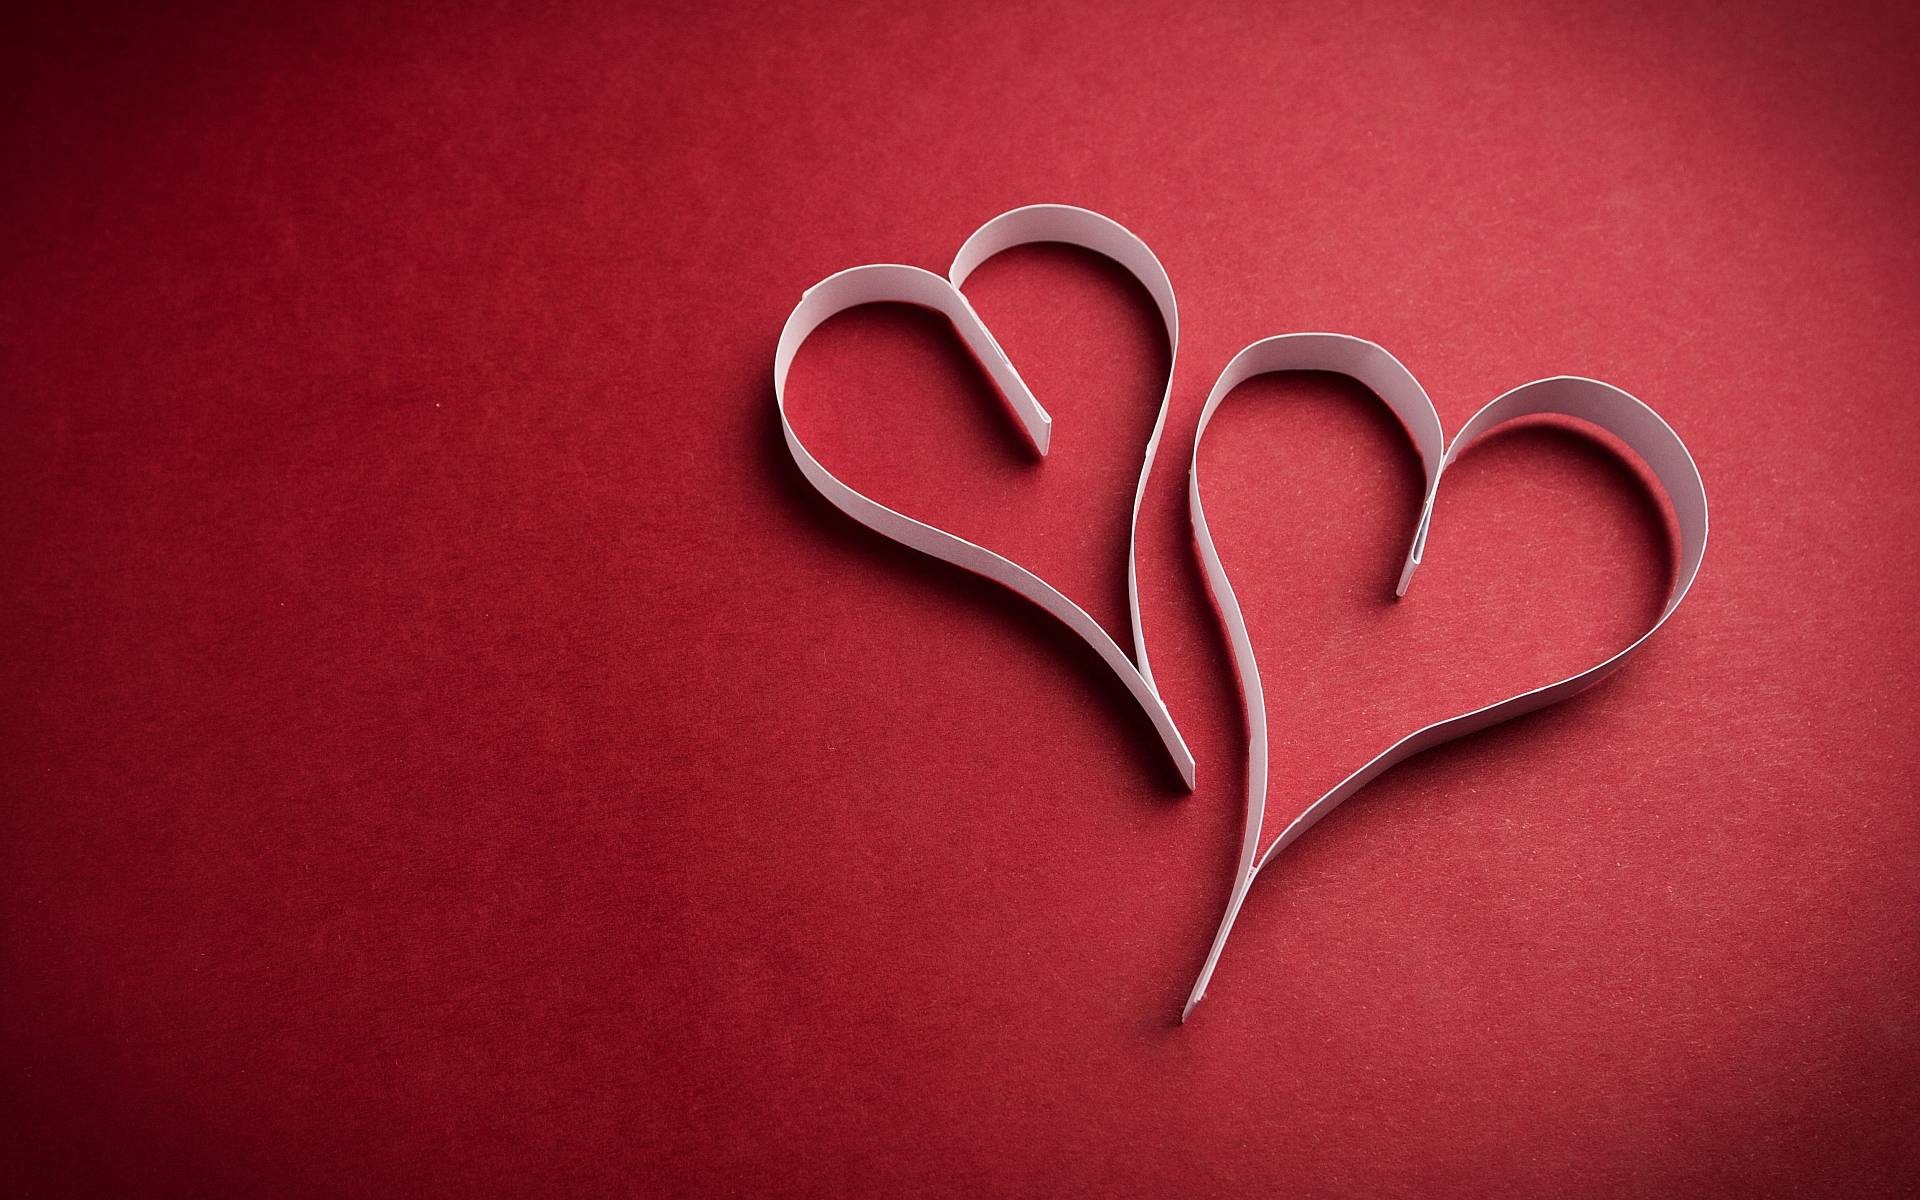 Red Love Heart Background 47 Images